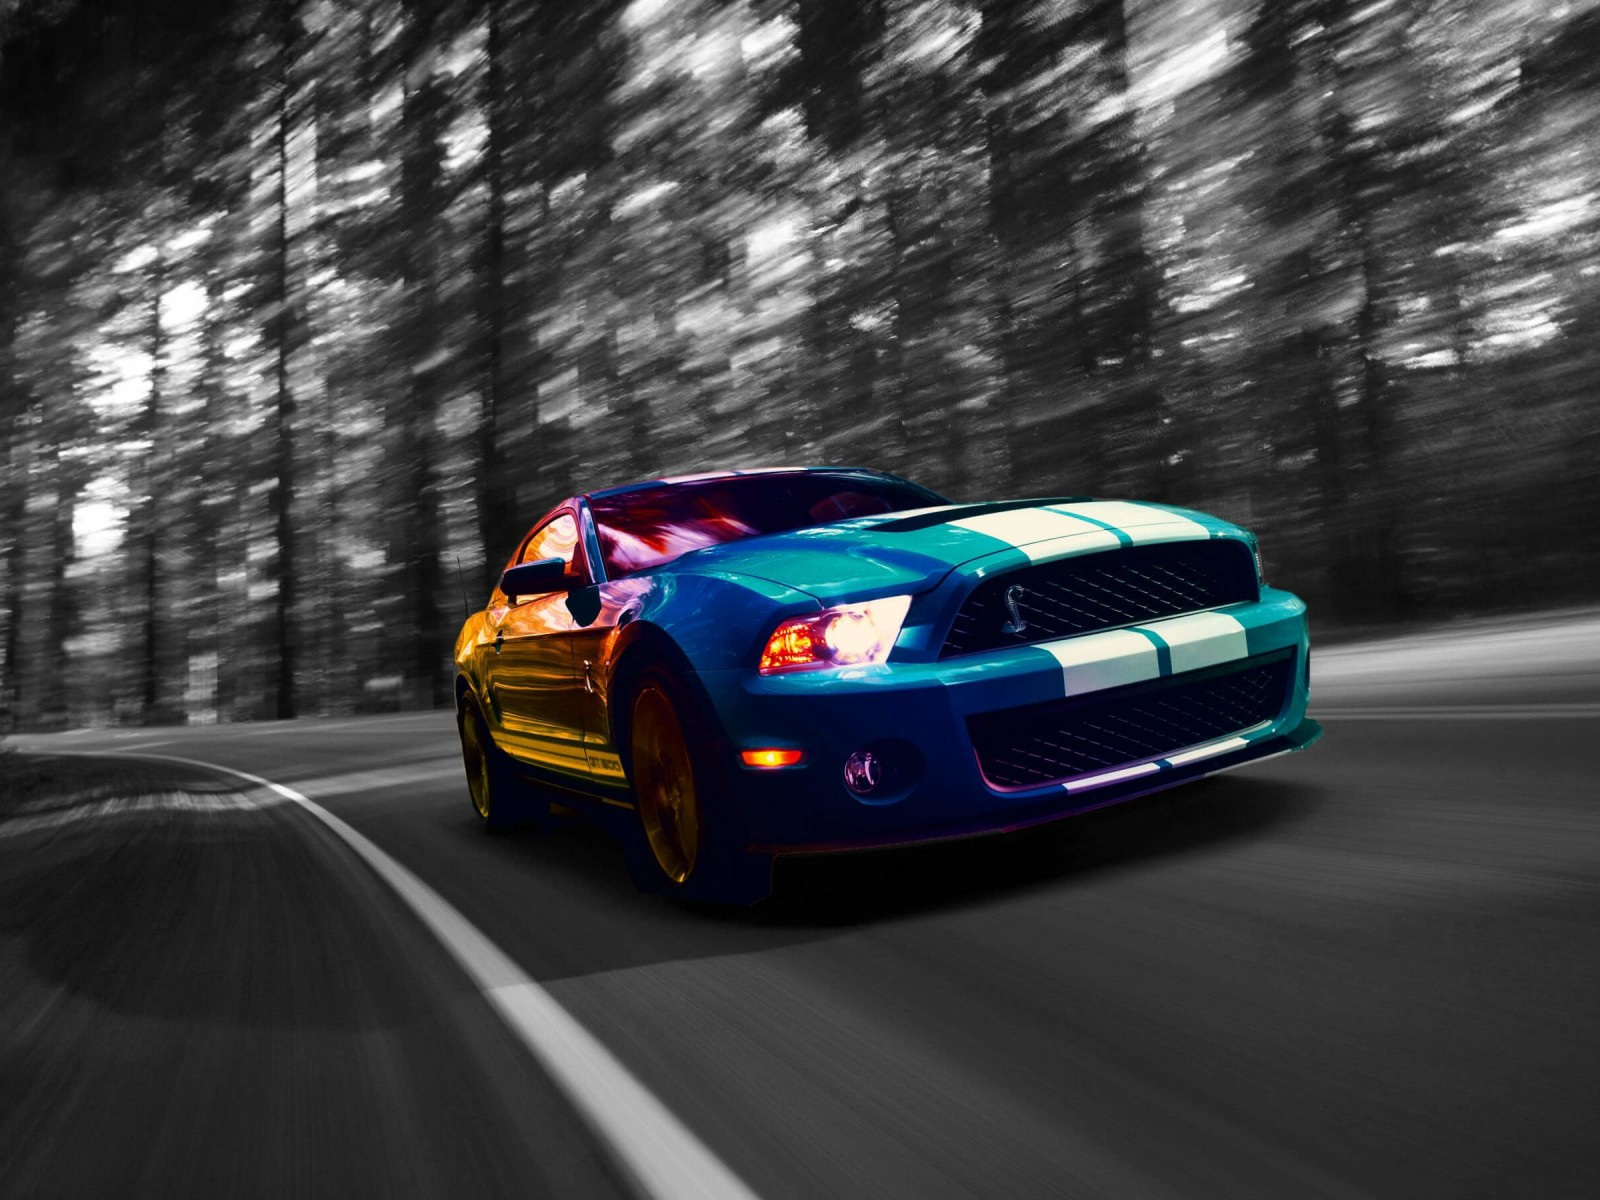 Ford Mustang Shelby GT500 Wallpaper for Desktop 1600x1200